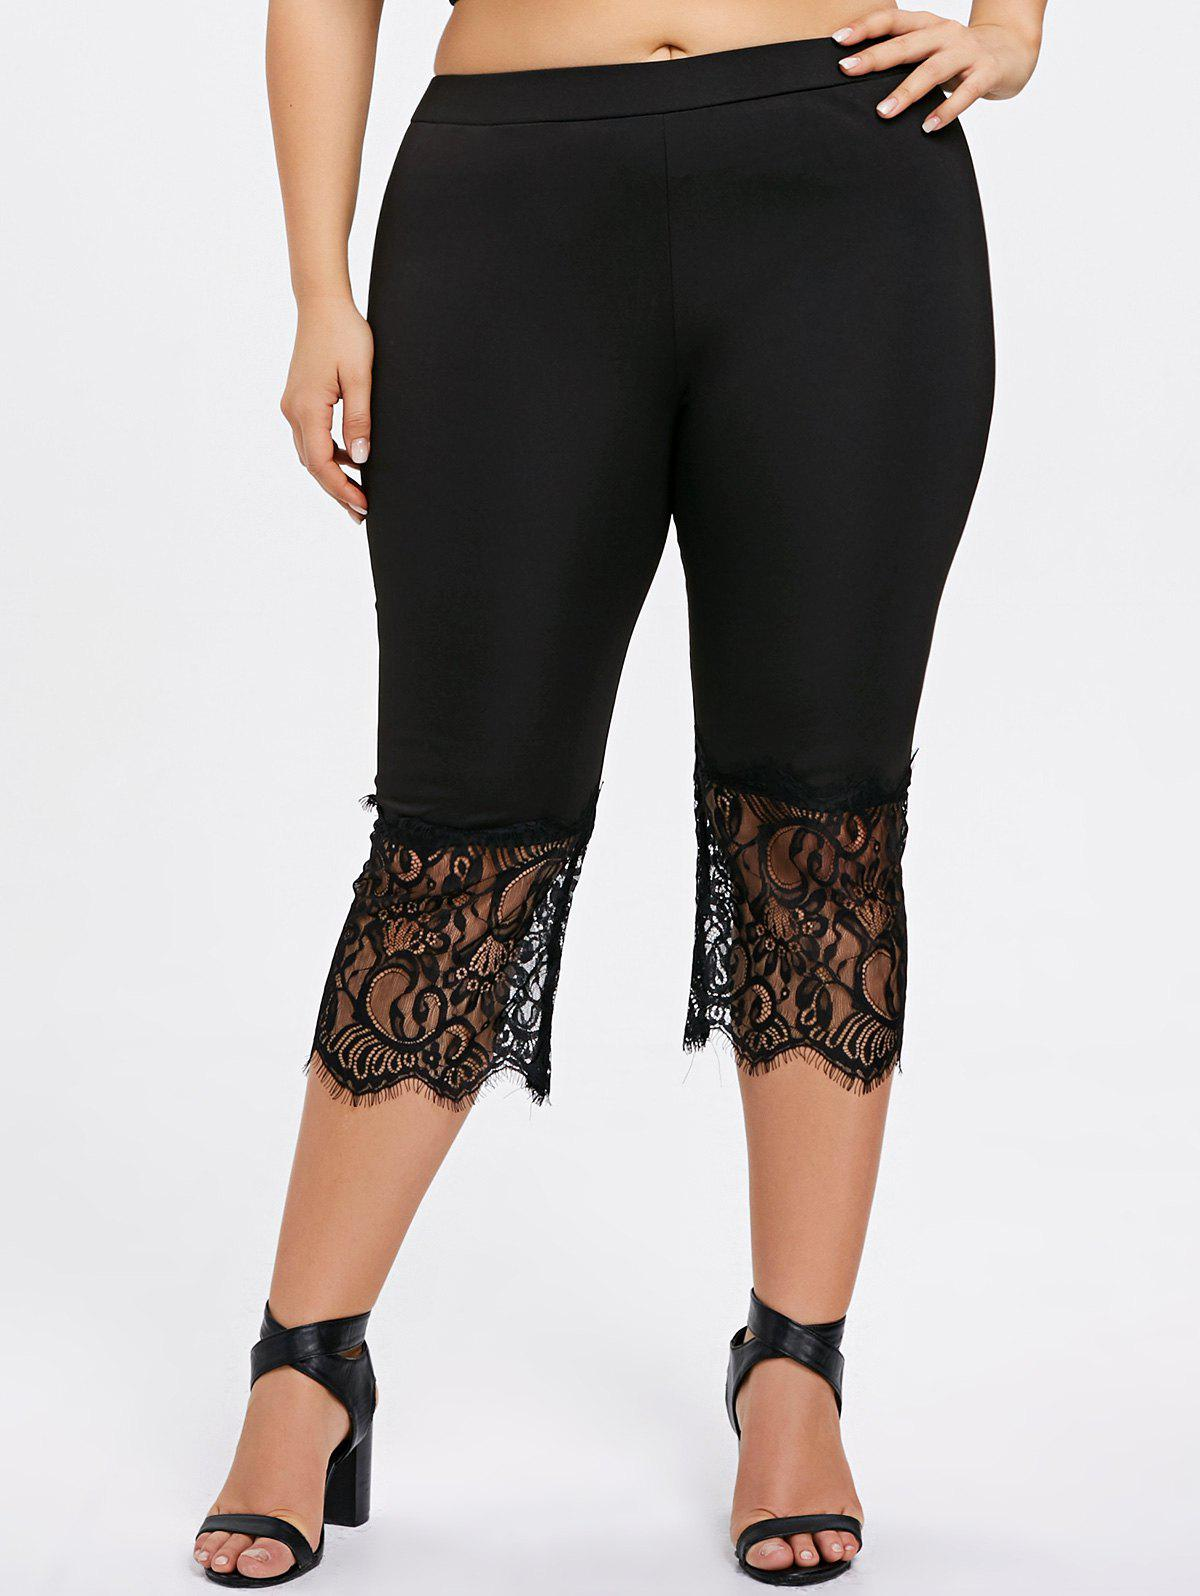 Plus Size Lace Panel Capri Pants - BLACK XL